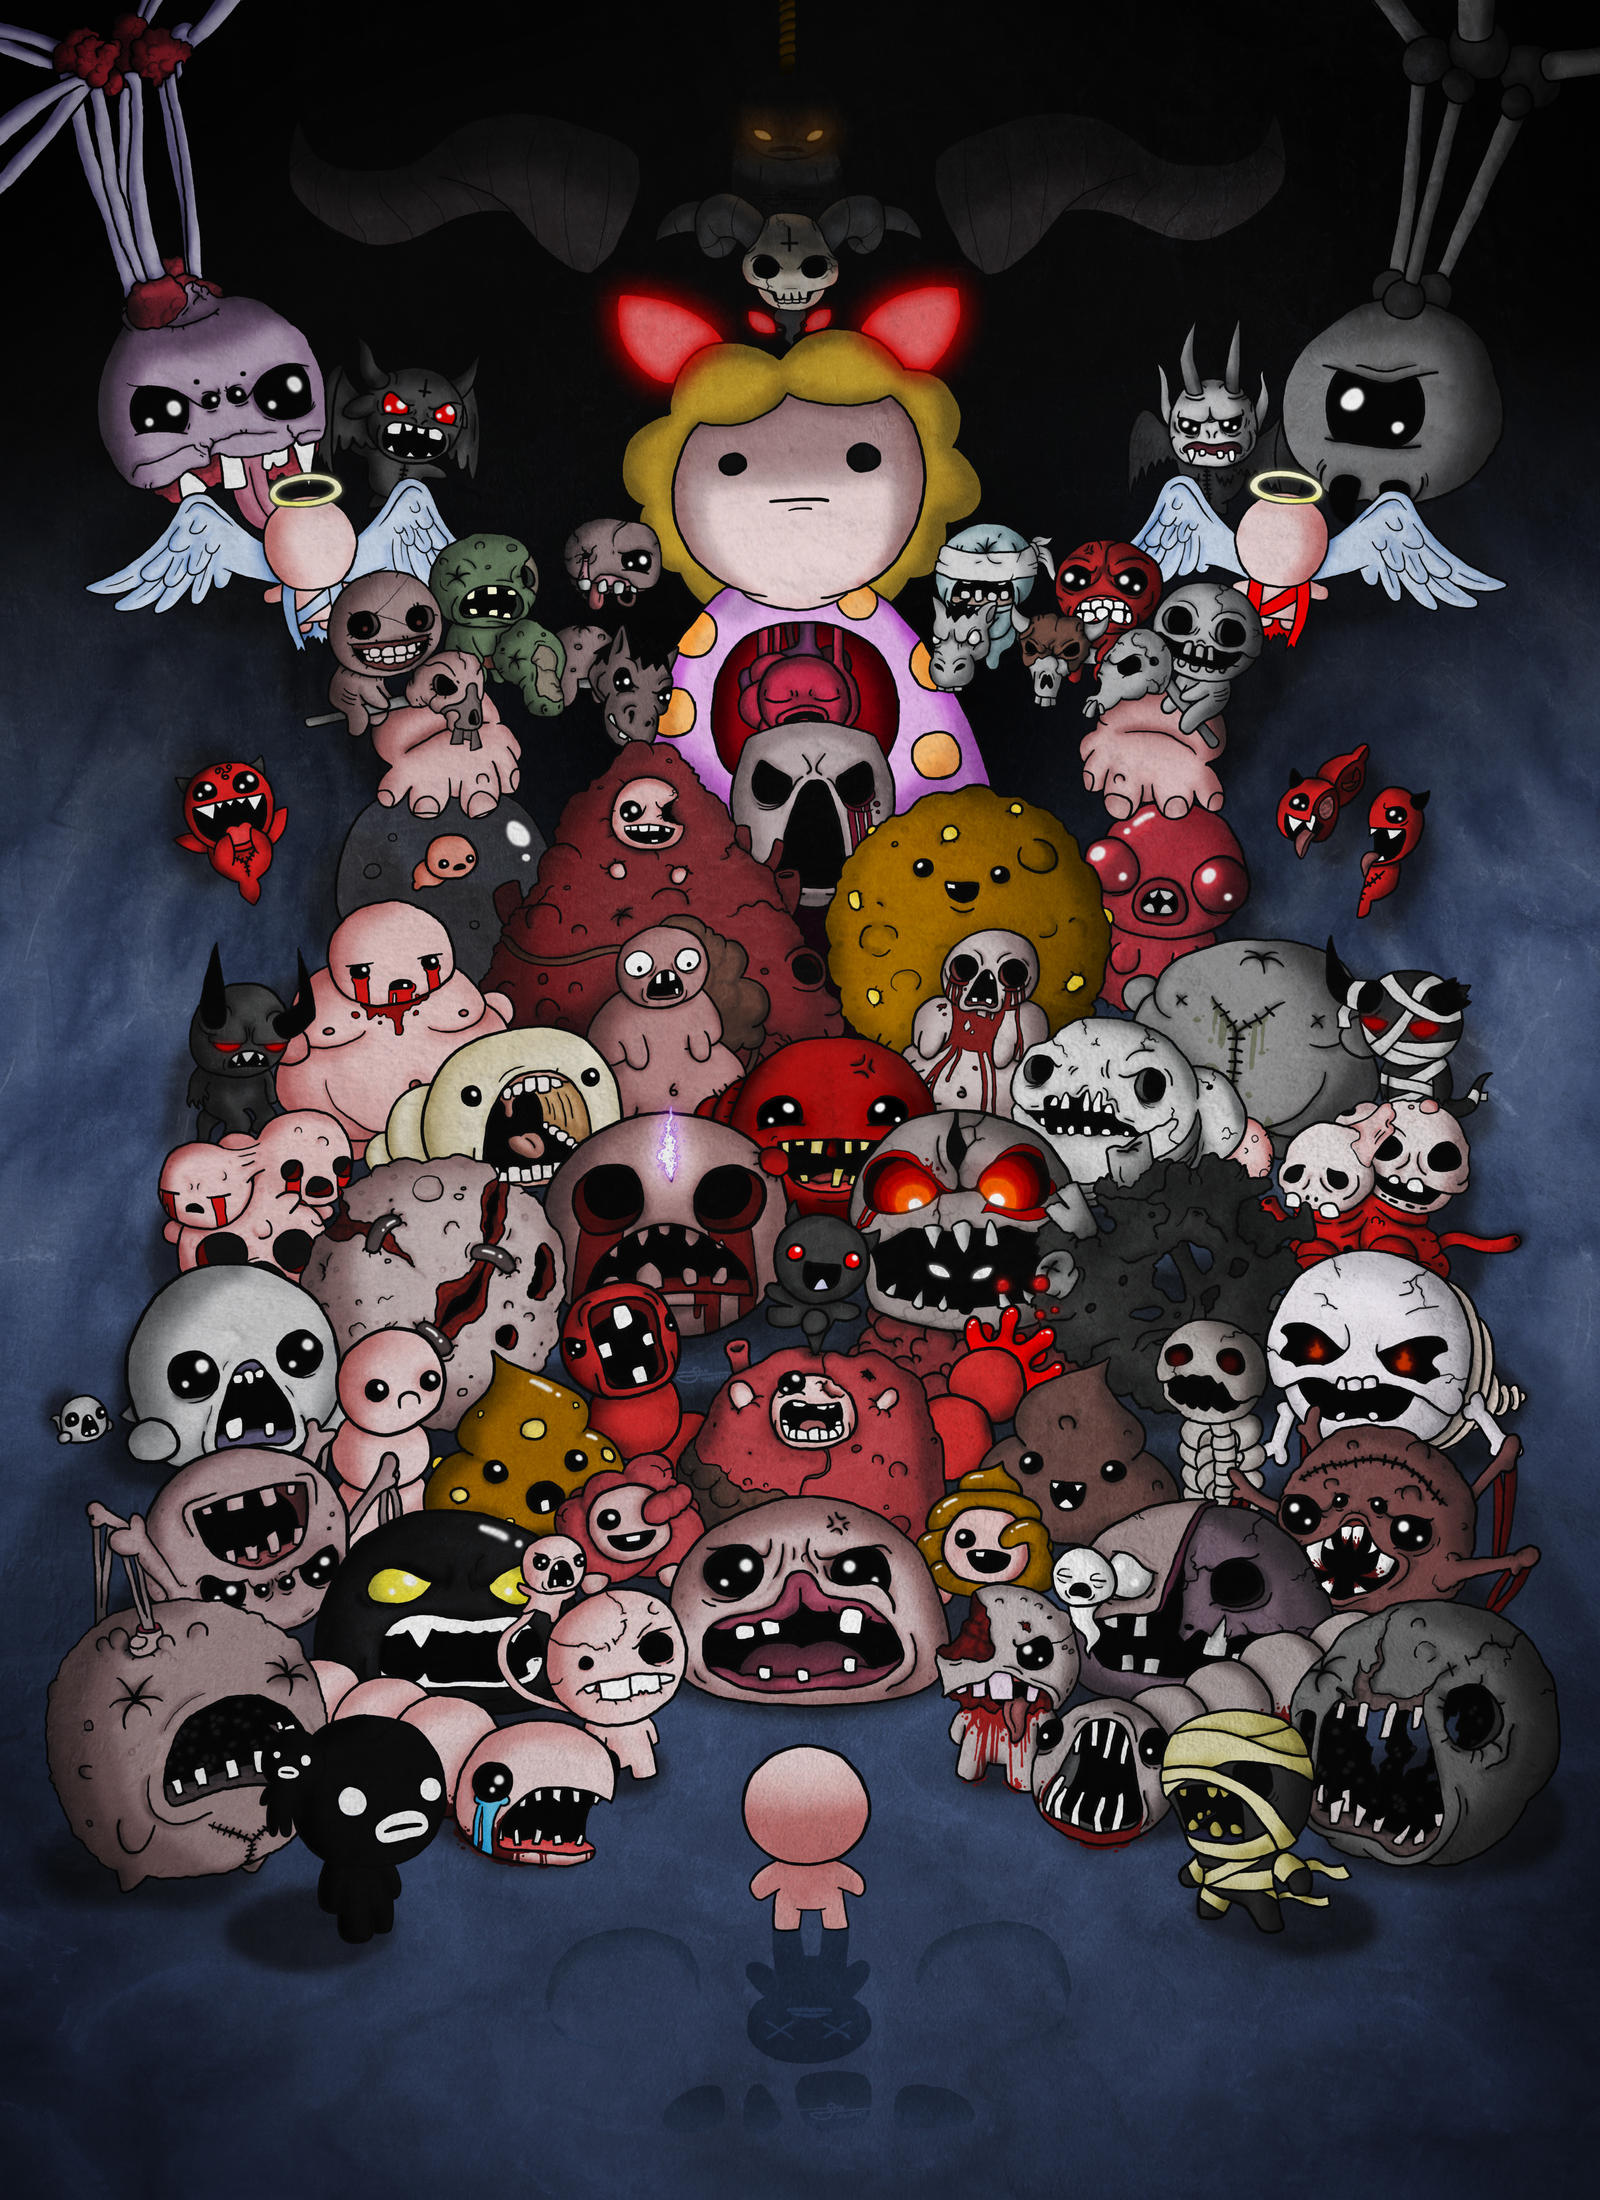 Binding Of Isaac Afterbirth All Bosses Complete By Jaego17 On